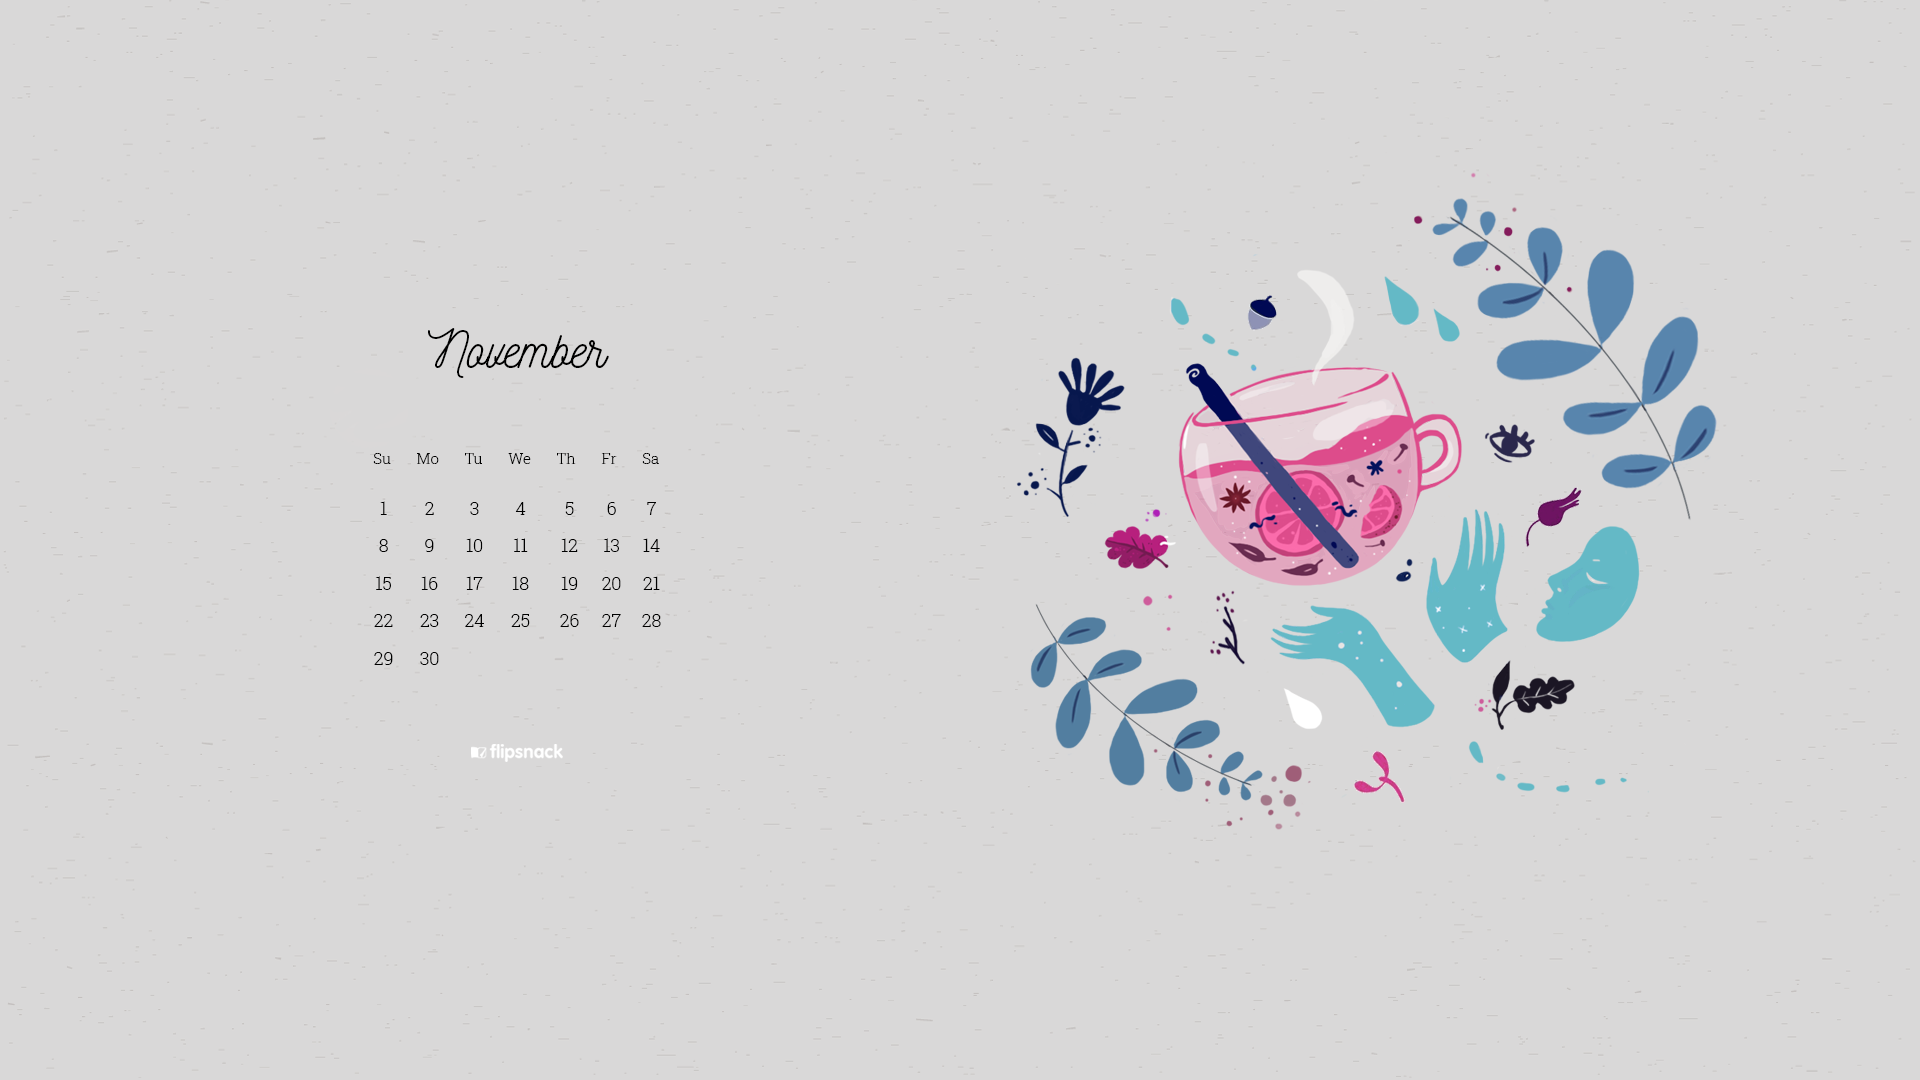 2020 wallpaper calendars January   December   Flipsnack Blog 1920x1080